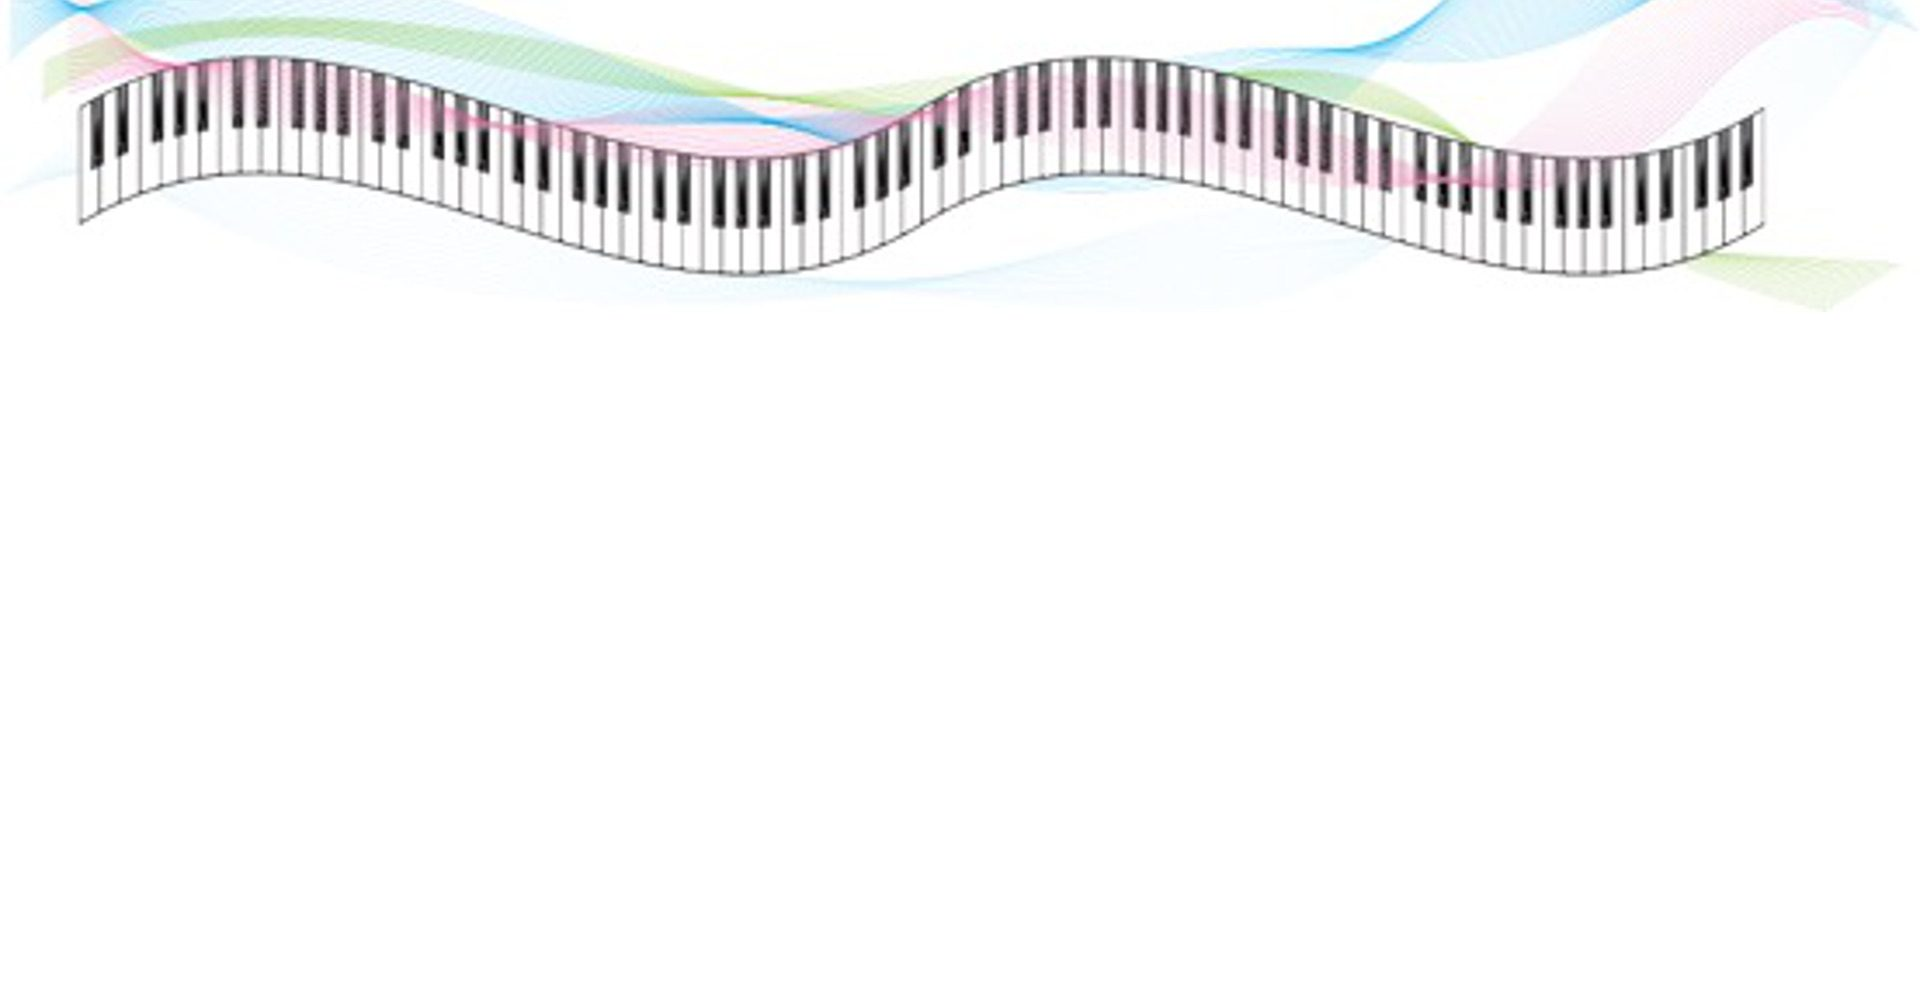 Western Australian Piano Pedagogy Conference